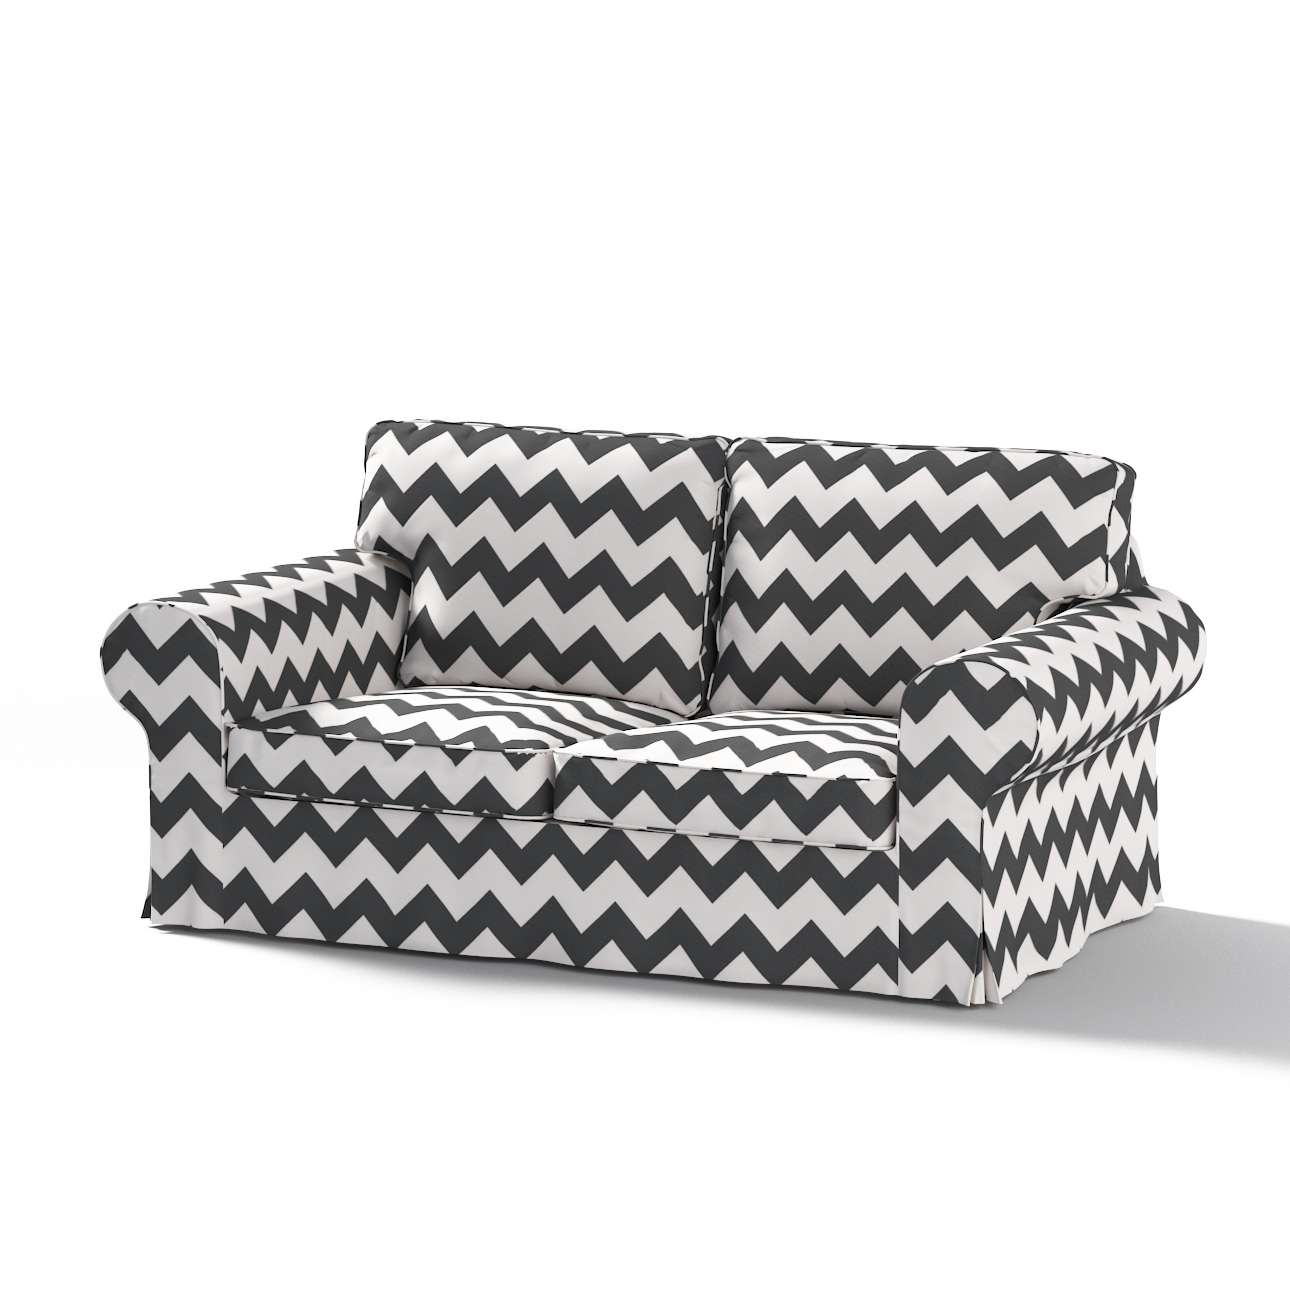 Ektorp 2-seater sofa cover in collection Comics/Geometrical, fabric: 135-02